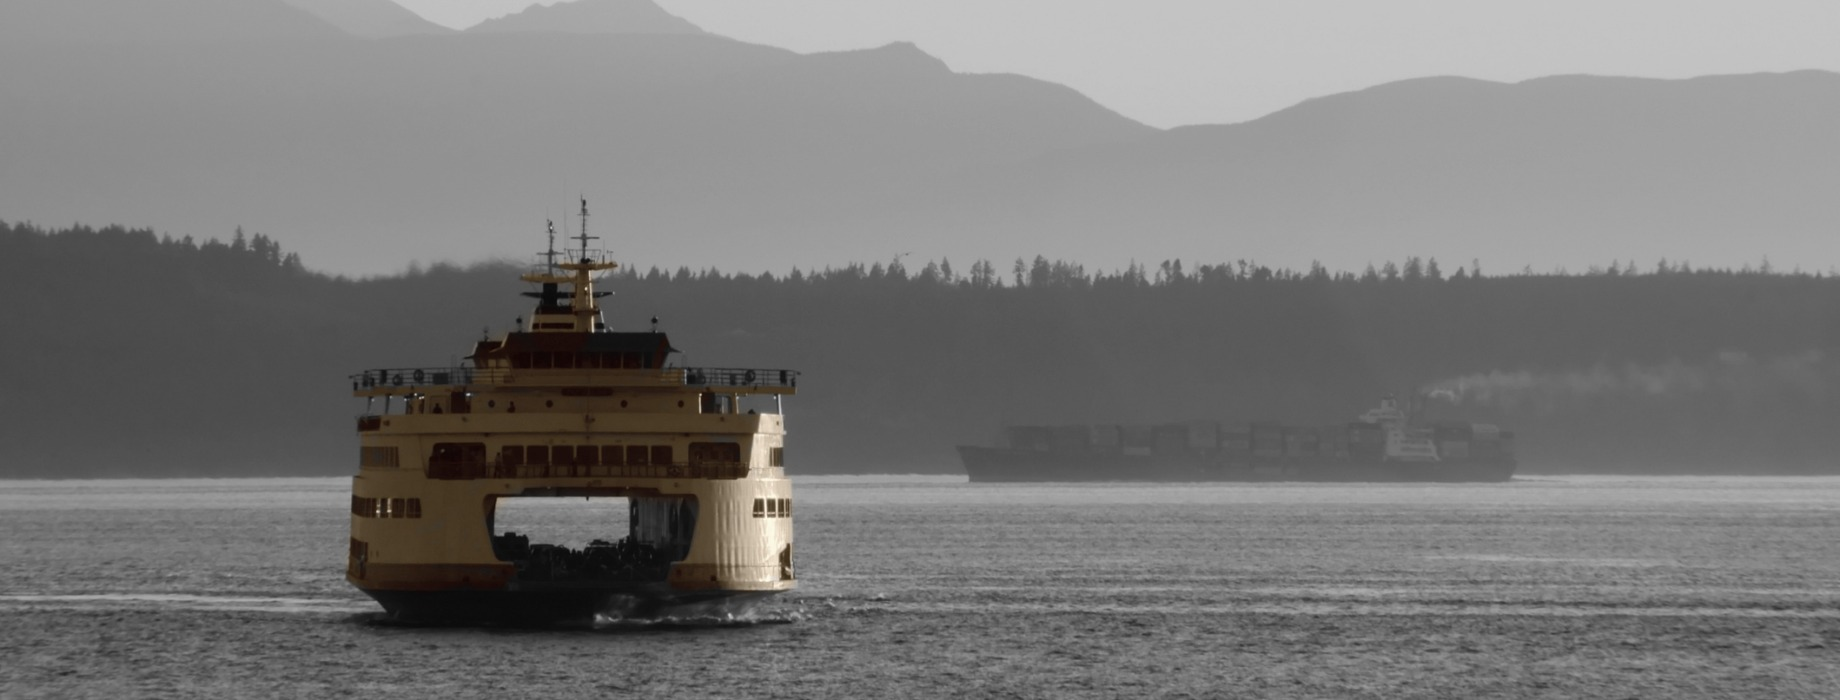 edmonds ferry-gold